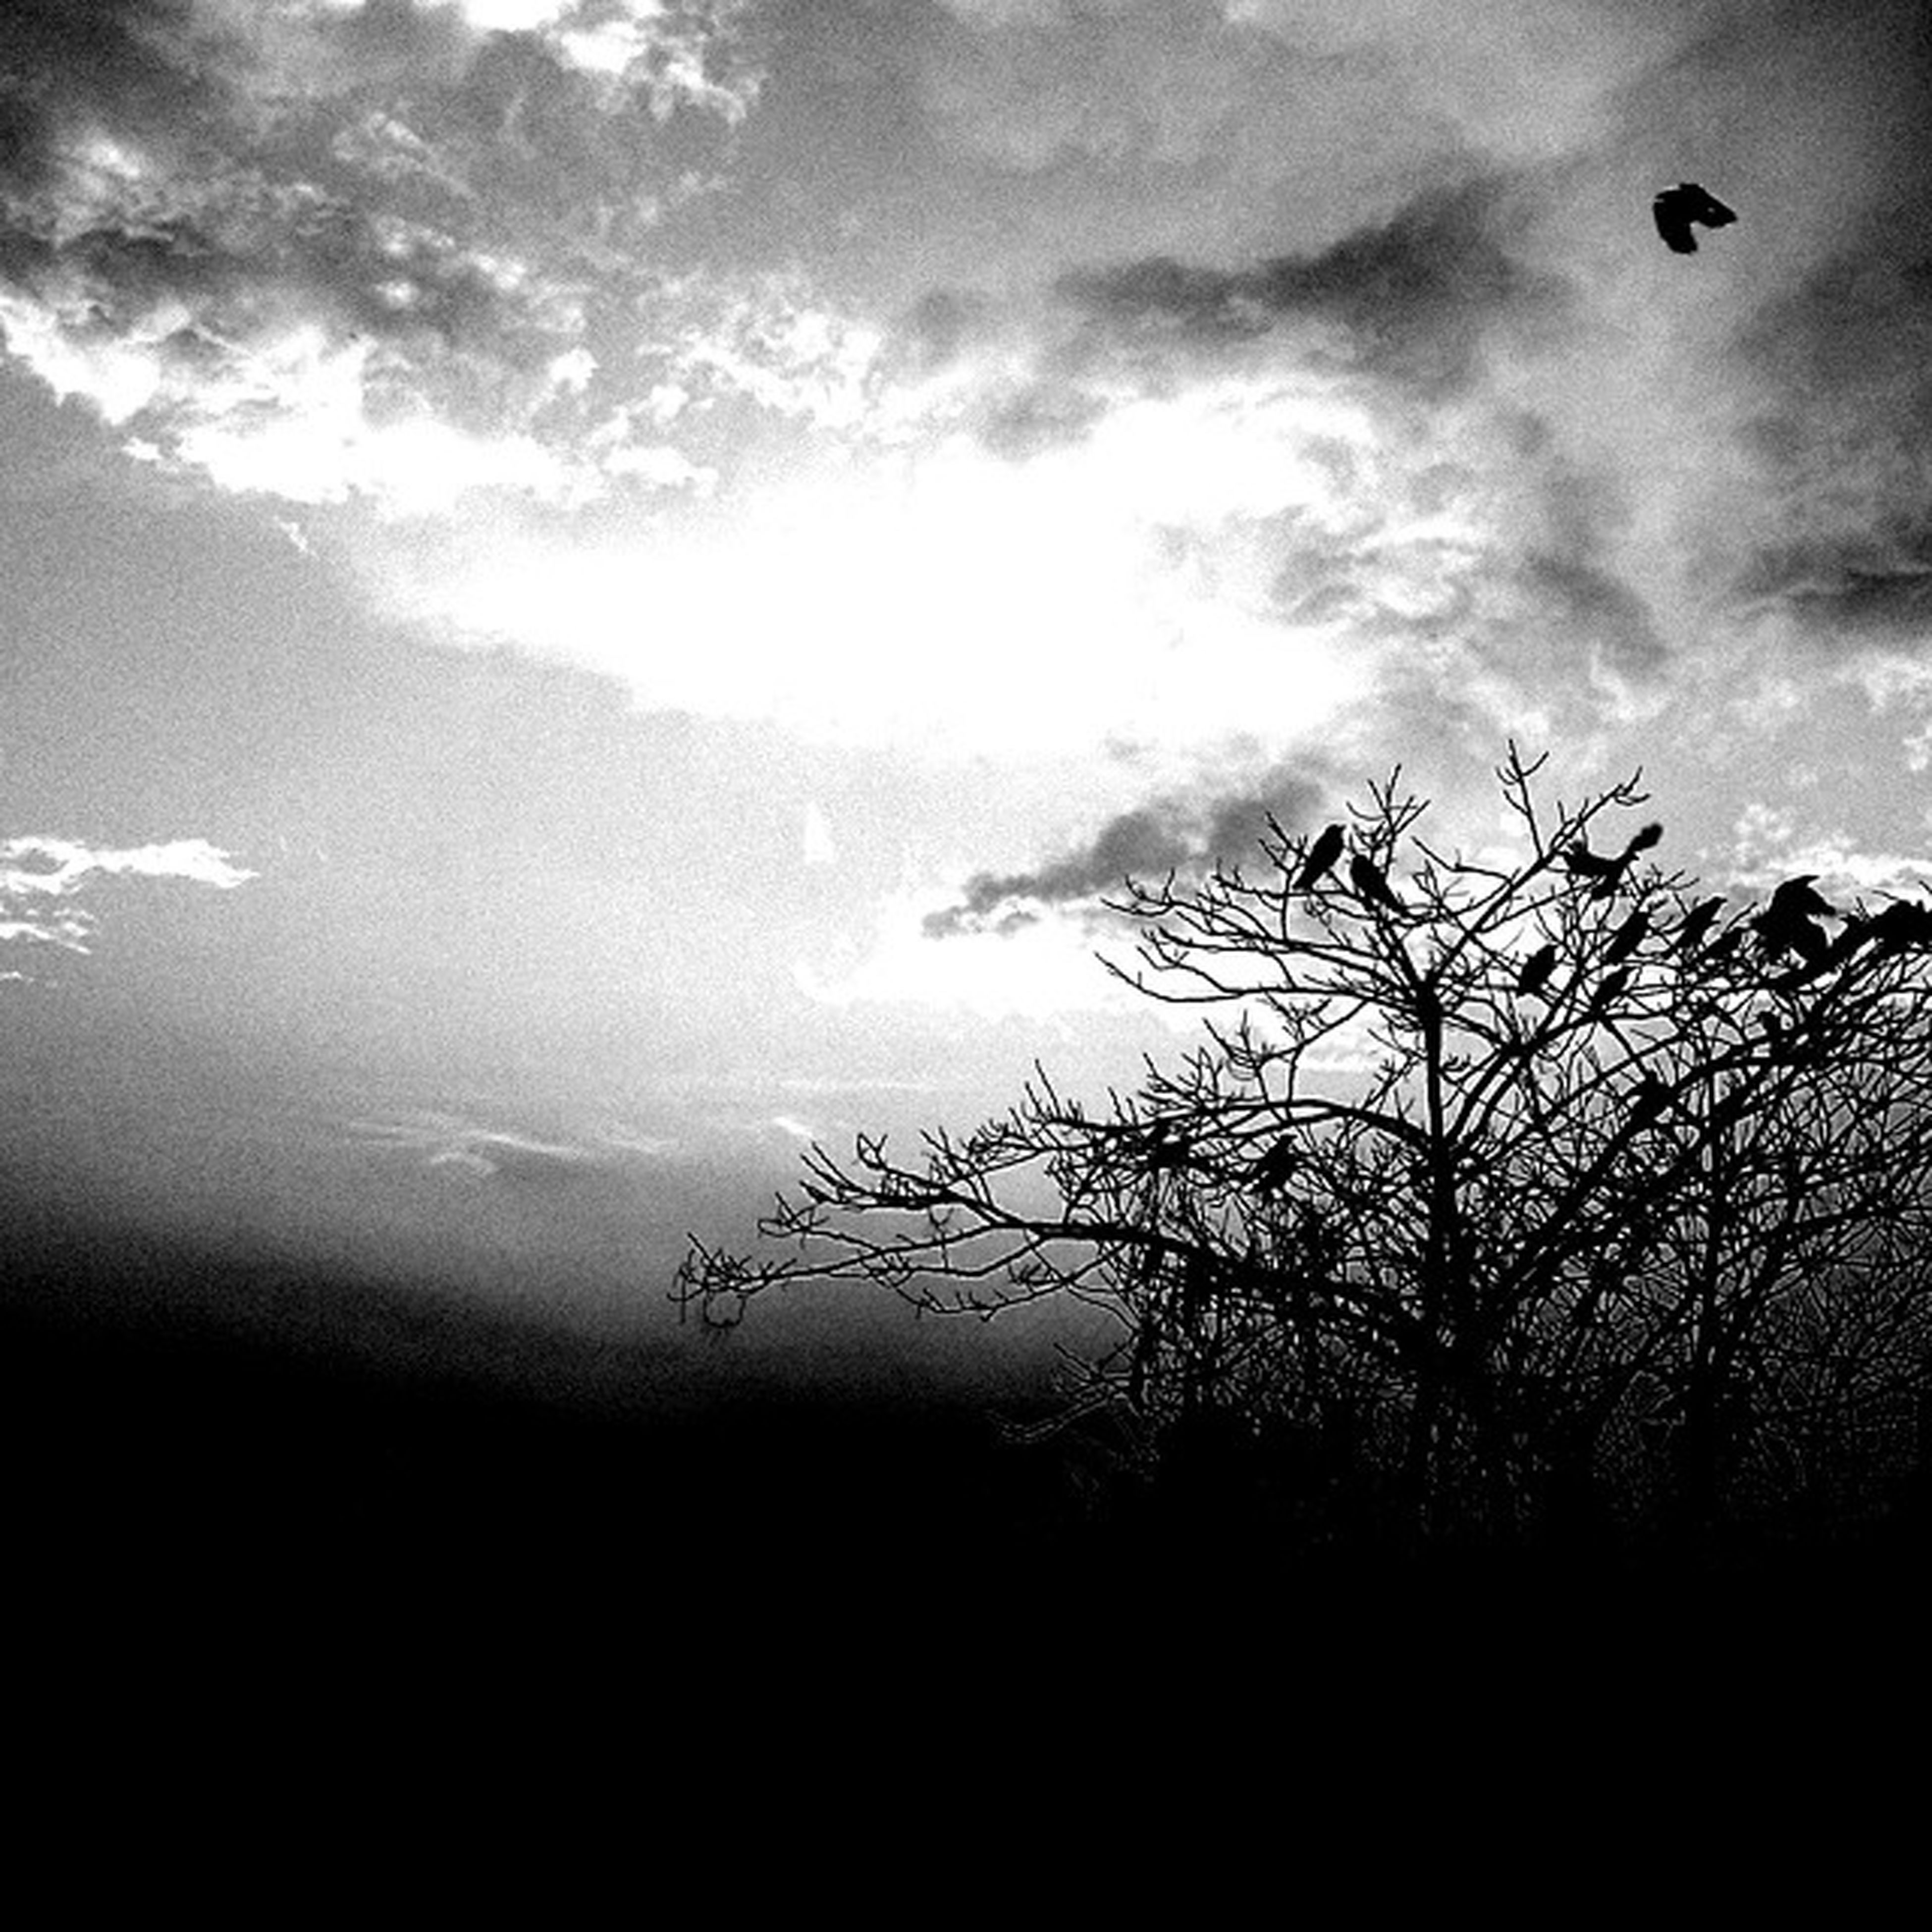 silhouette, sky, tranquility, tranquil scene, scenics, beauty in nature, tree, nature, cloud - sky, low angle view, idyllic, cloud, cloudy, sunset, branch, outdoors, sun, no people, growth, non-urban scene